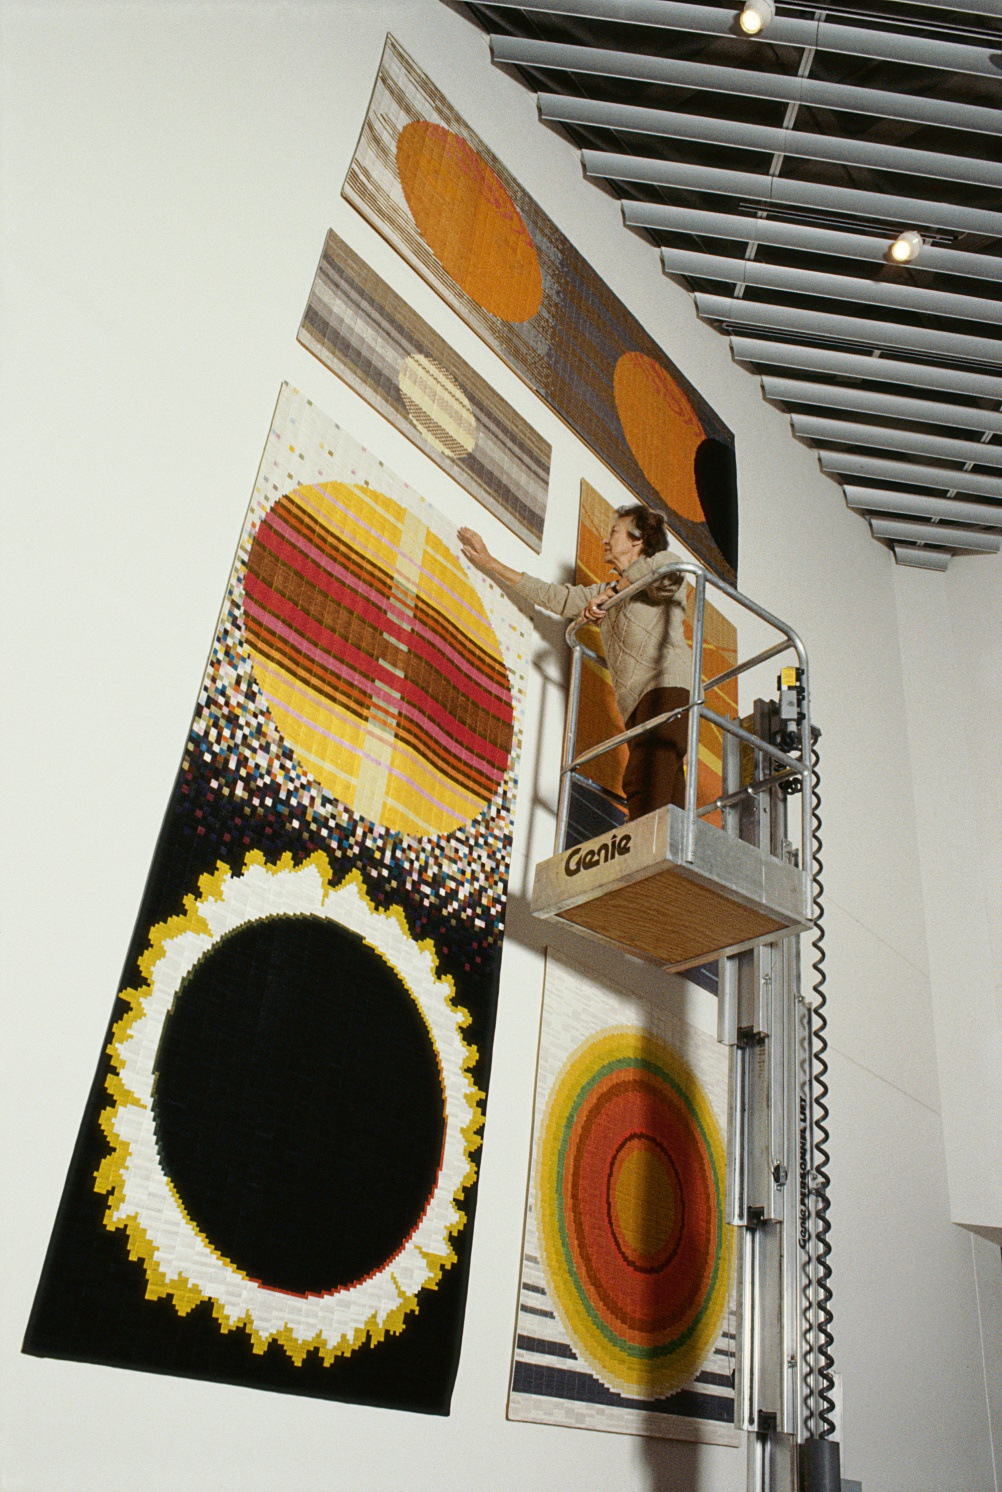 Image courtesy of Robin and Lucienne Day Foundation